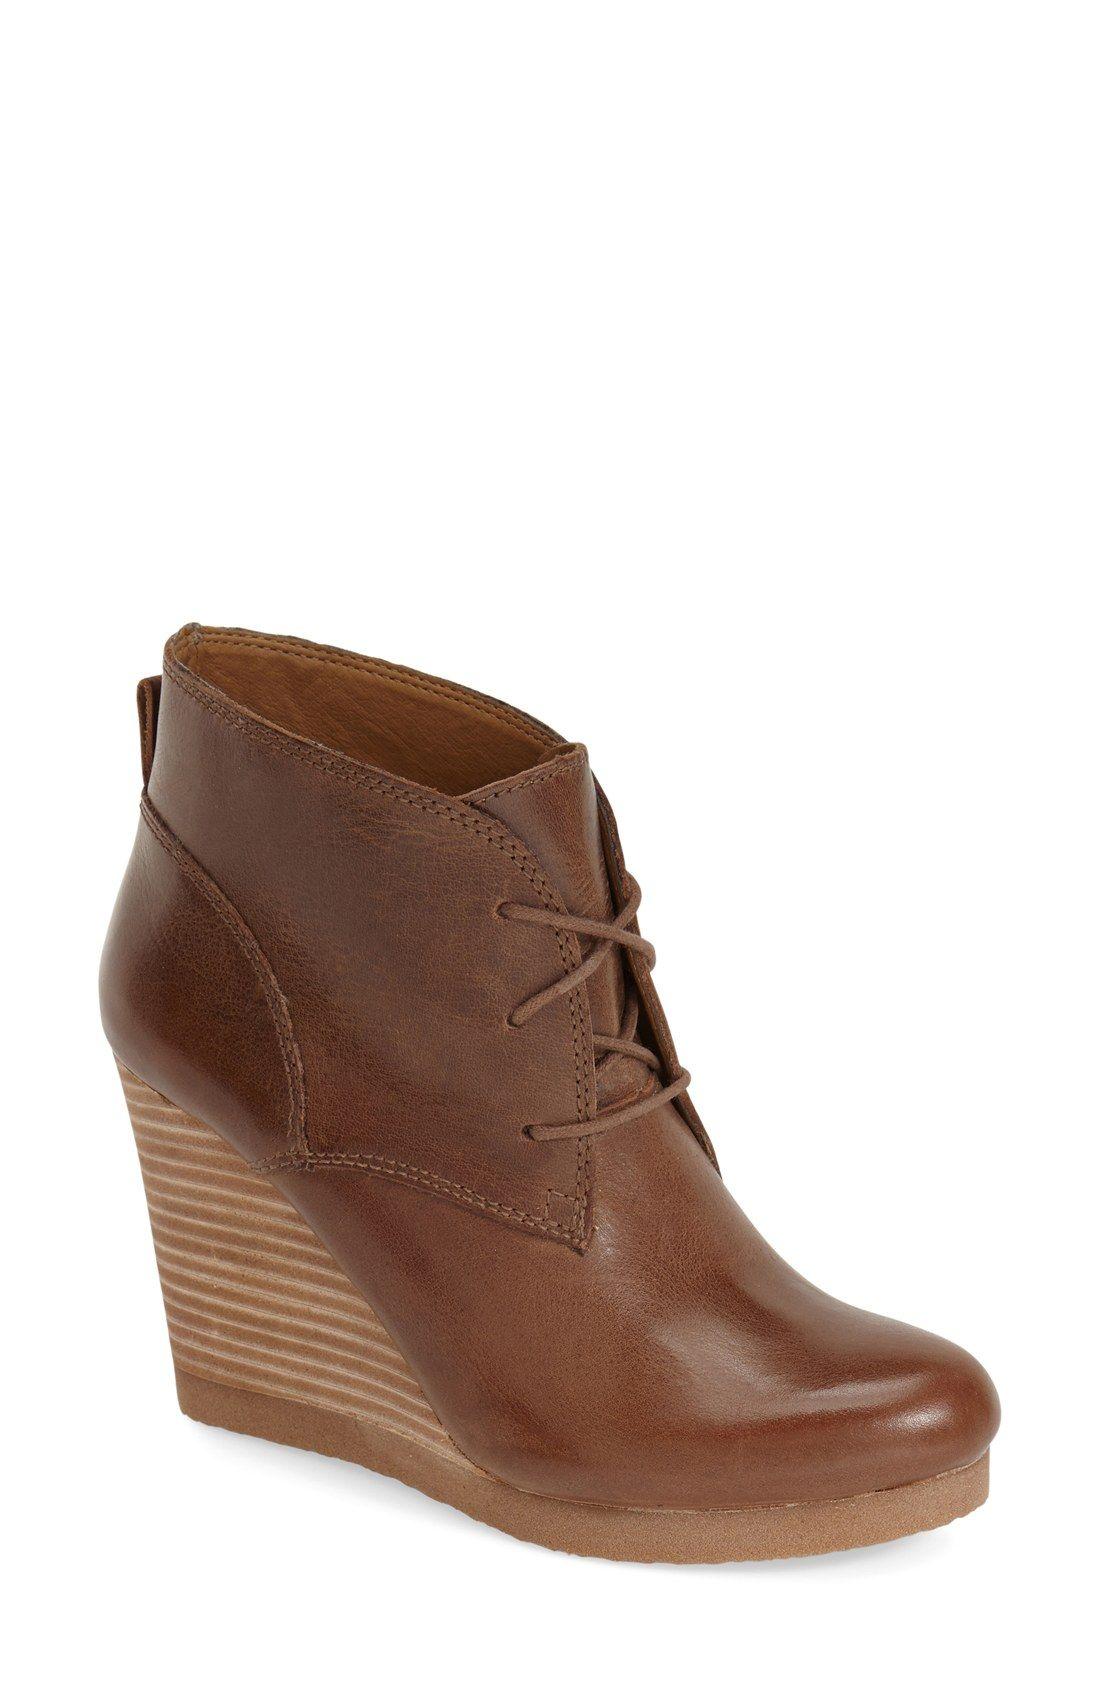 71aa59e62b6 Lucky Brand Women s Taheeti Lace-Up Wedge Booties 75% off   Macy s ...